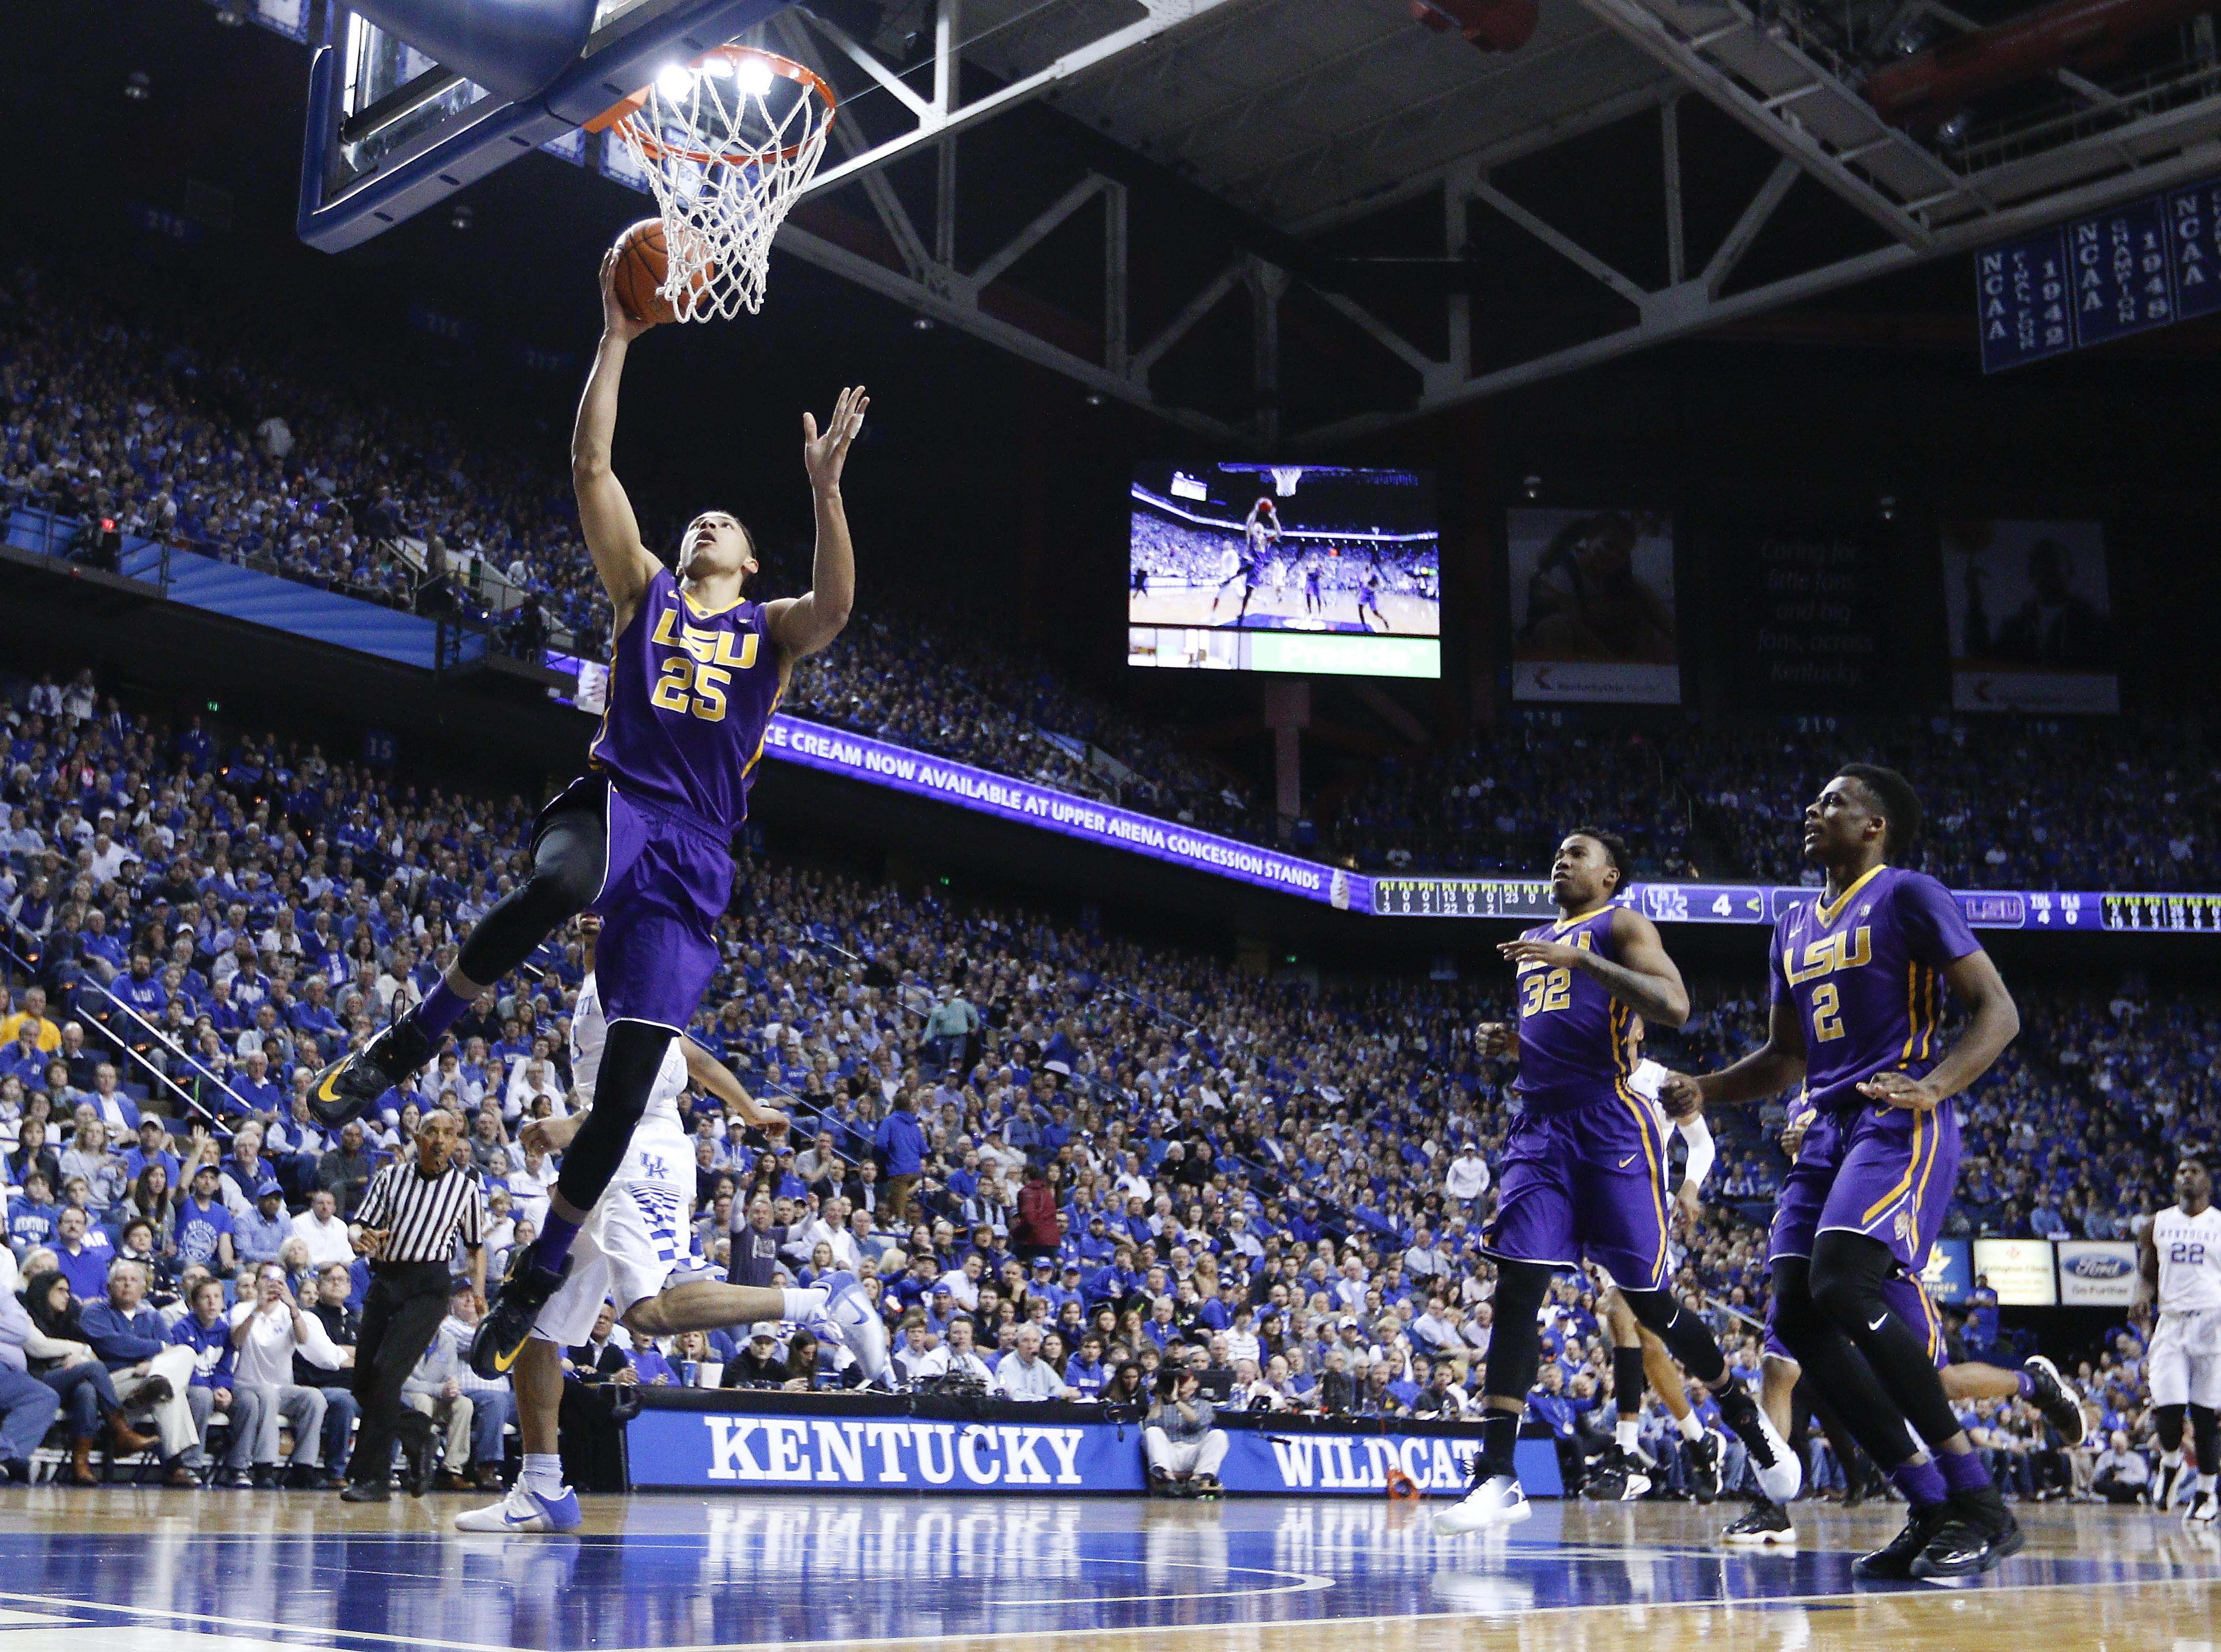 Ben simmons shows the ncaa why the oneanddone rule is a